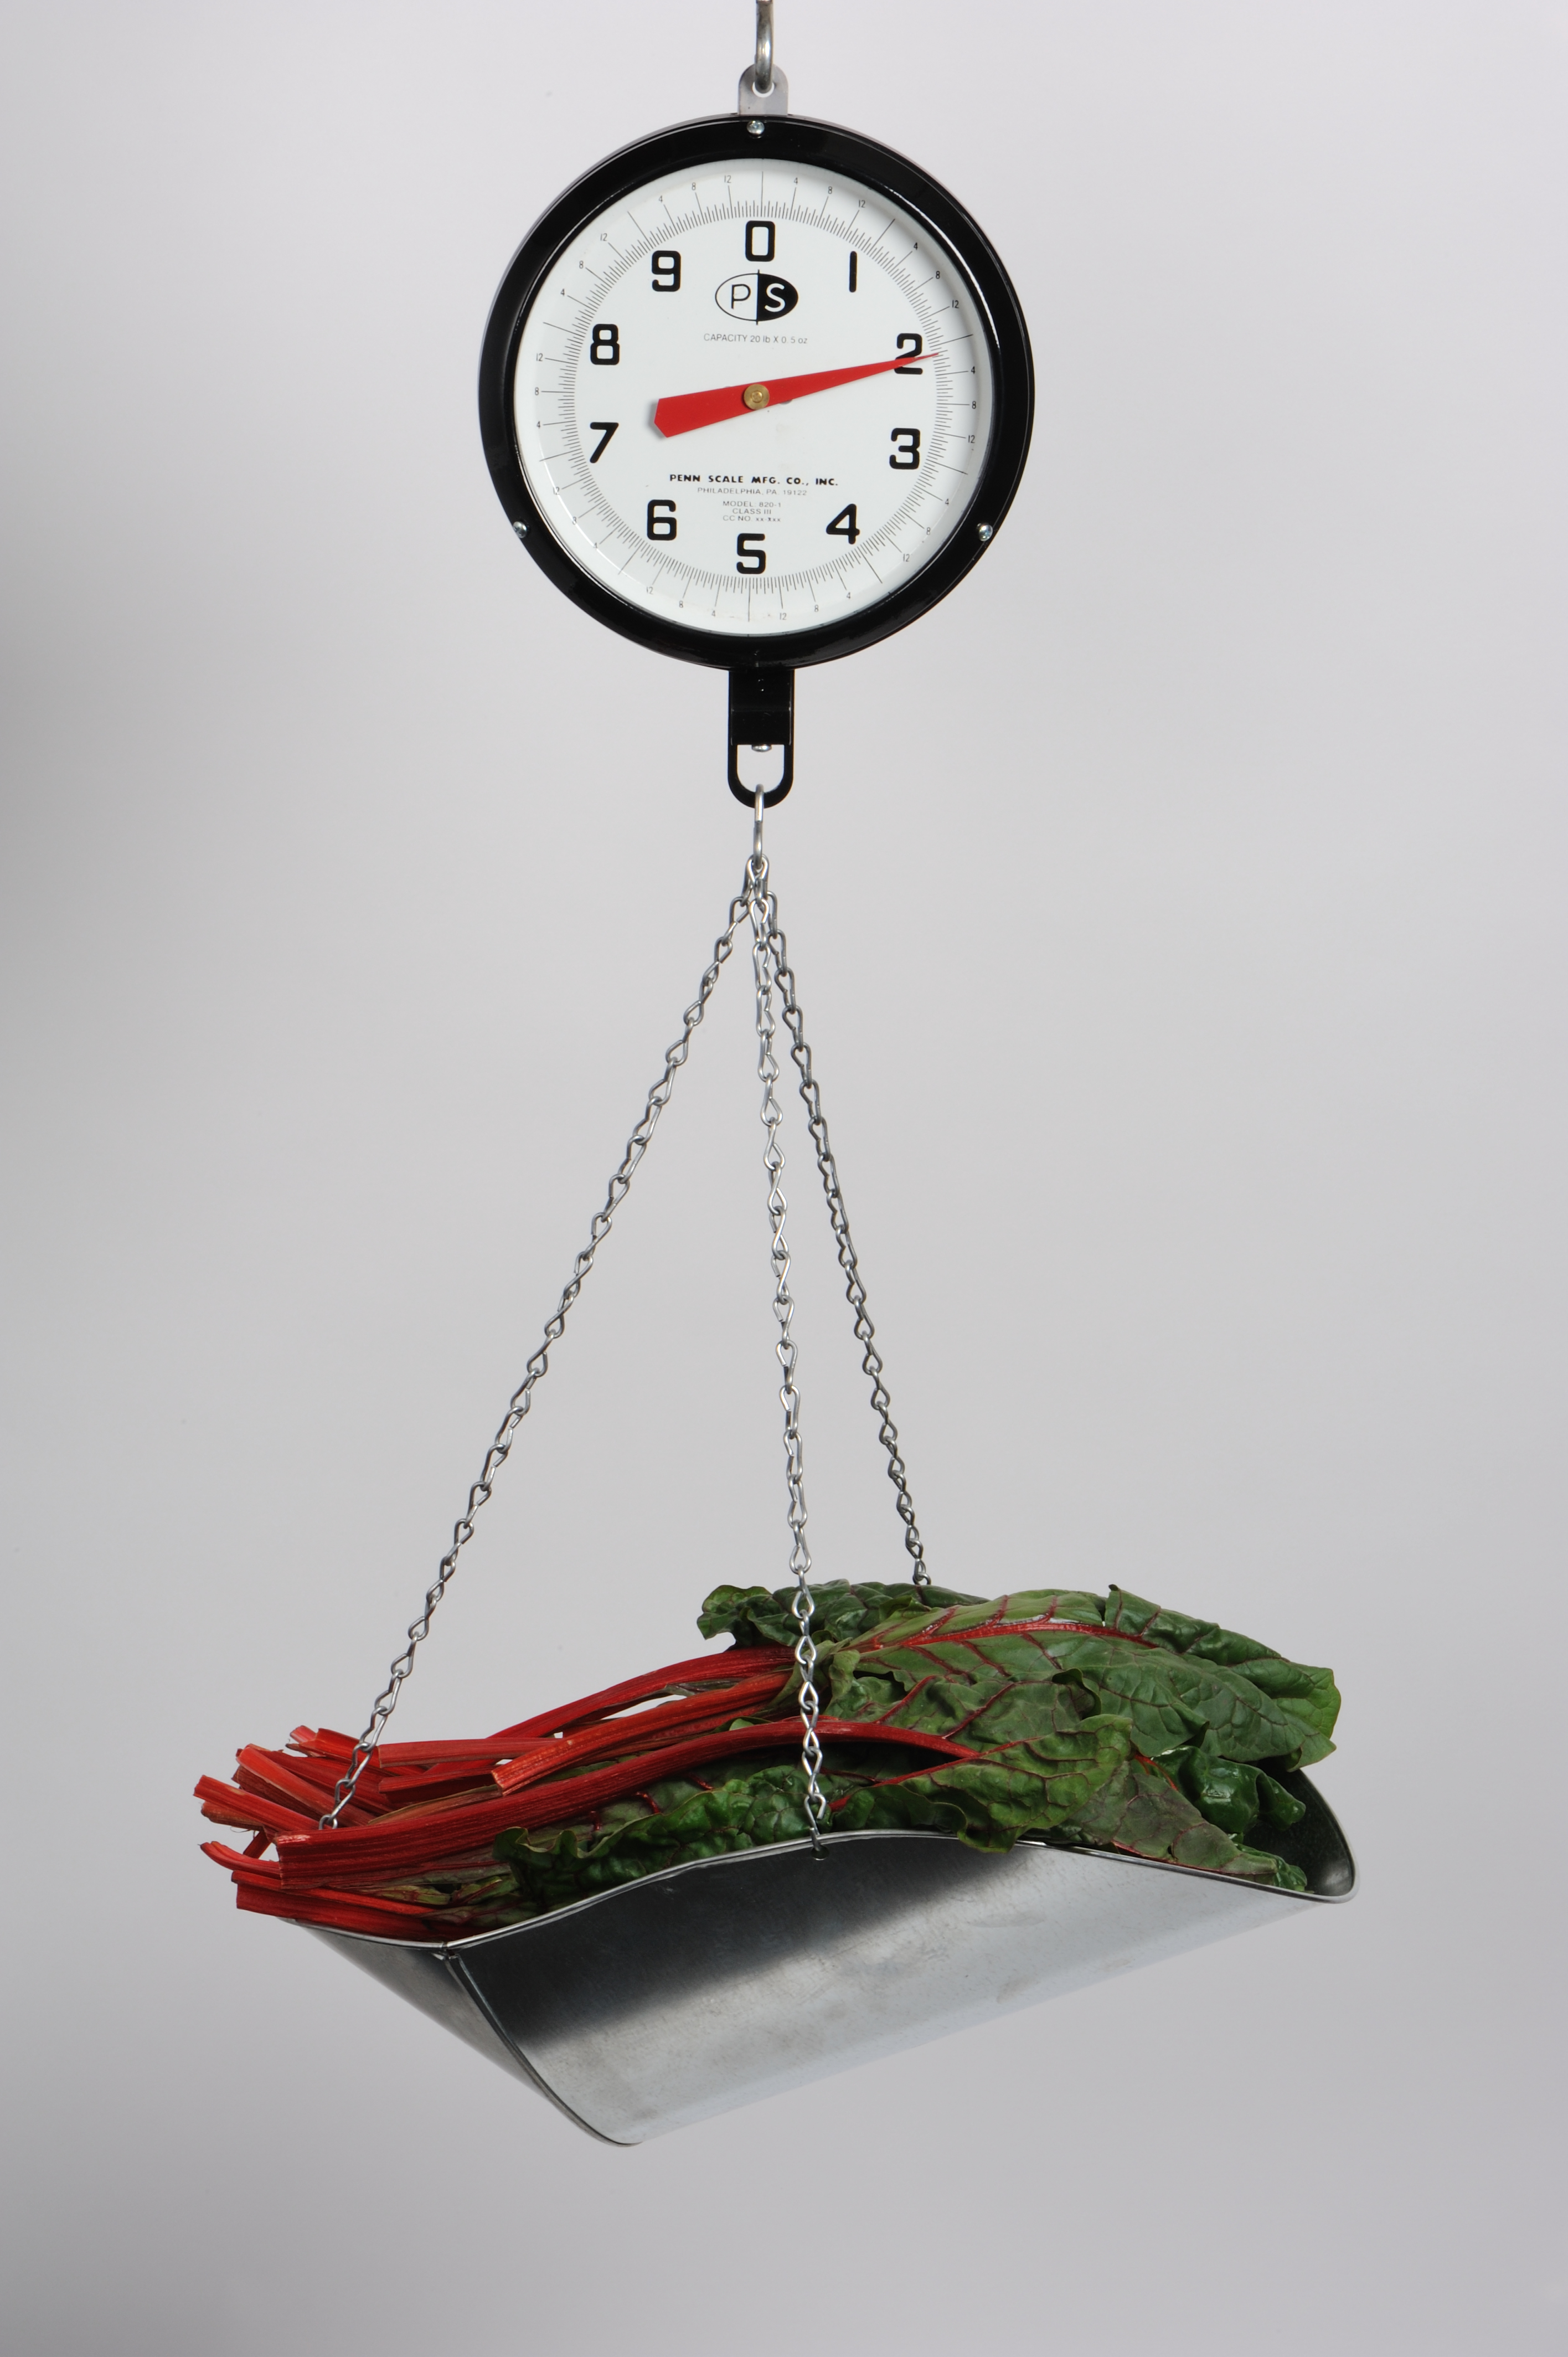 Penn Scale 820 VG 20 Pound 8 inch Hanging Scale with Vegetable Scoop and Glass